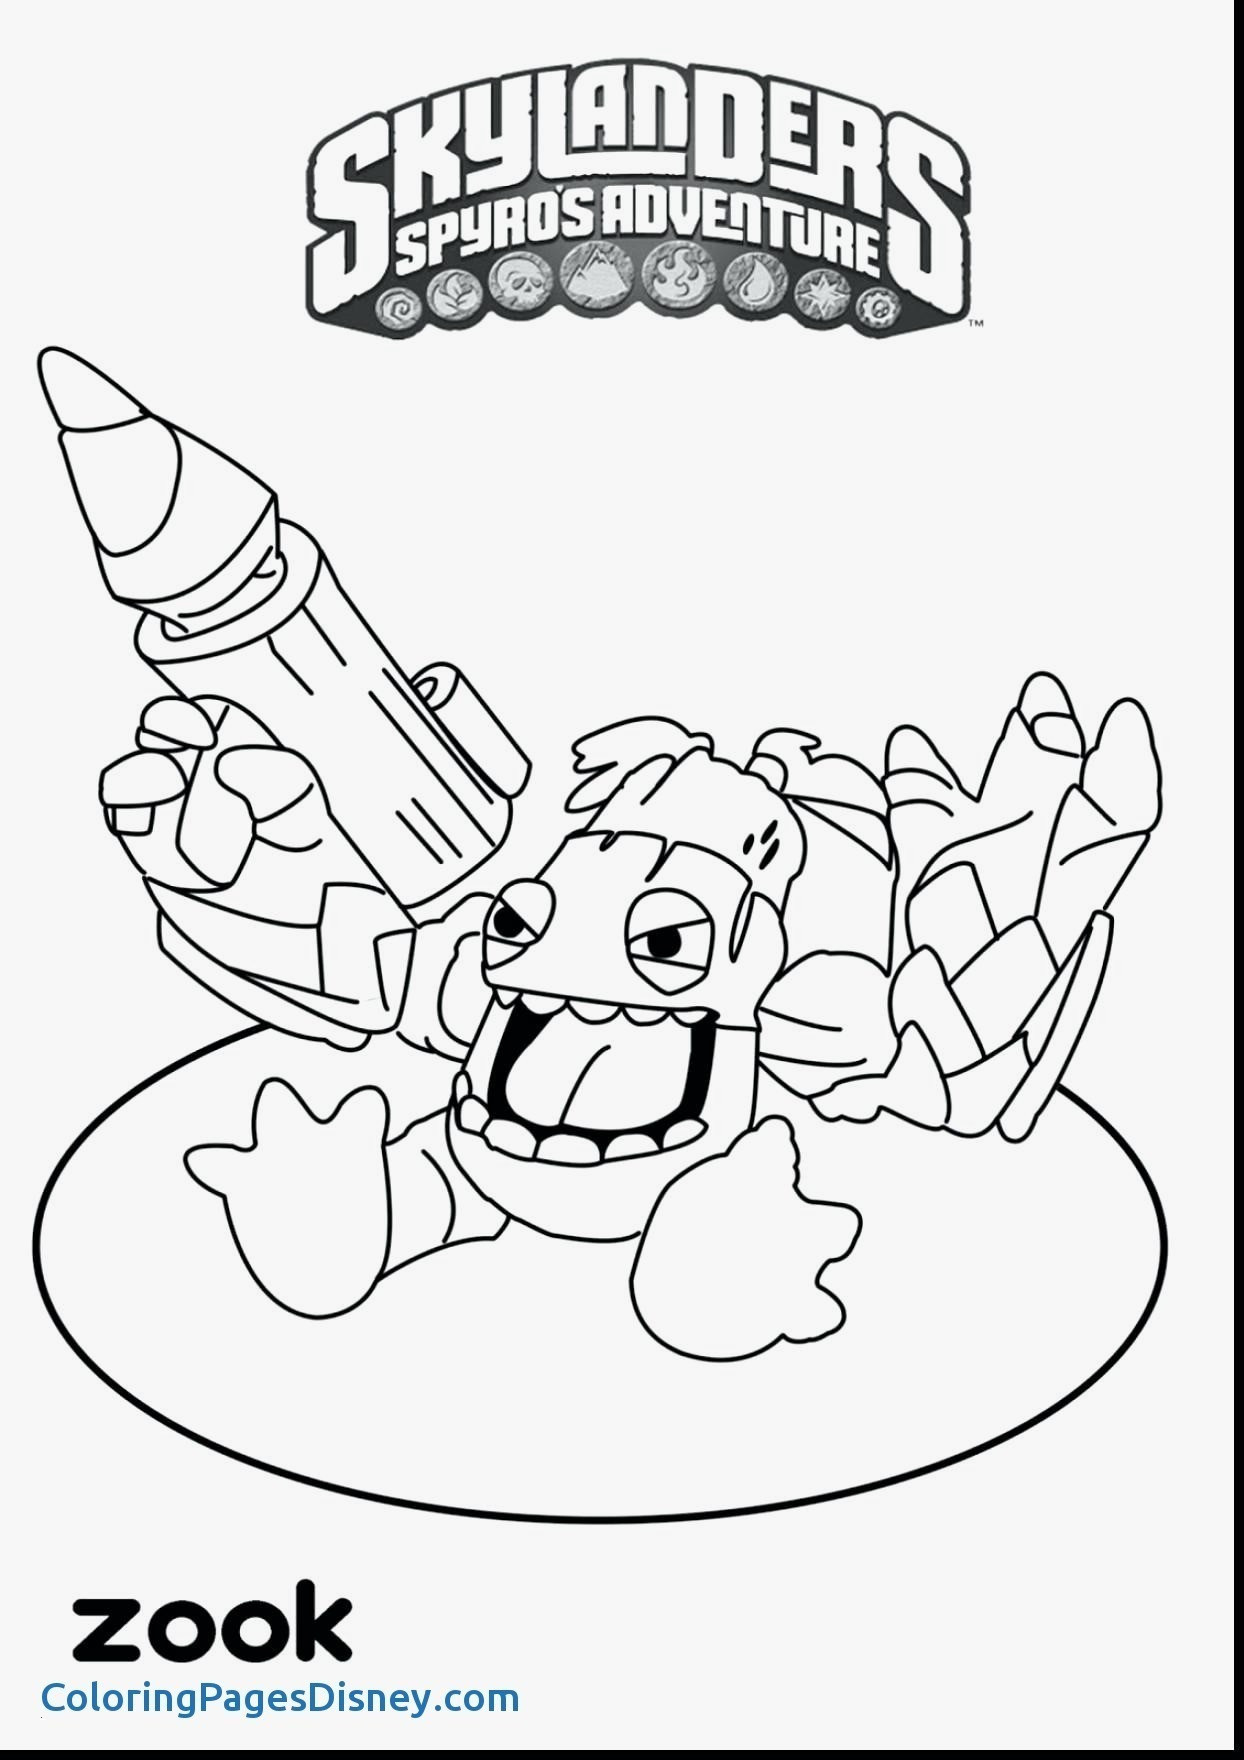 spongebob coloring pages games Collection-Coloring Pages Spongebob Spongebob Squarepants Coloring Pages Brilliant Disney Coloring Book 2-f